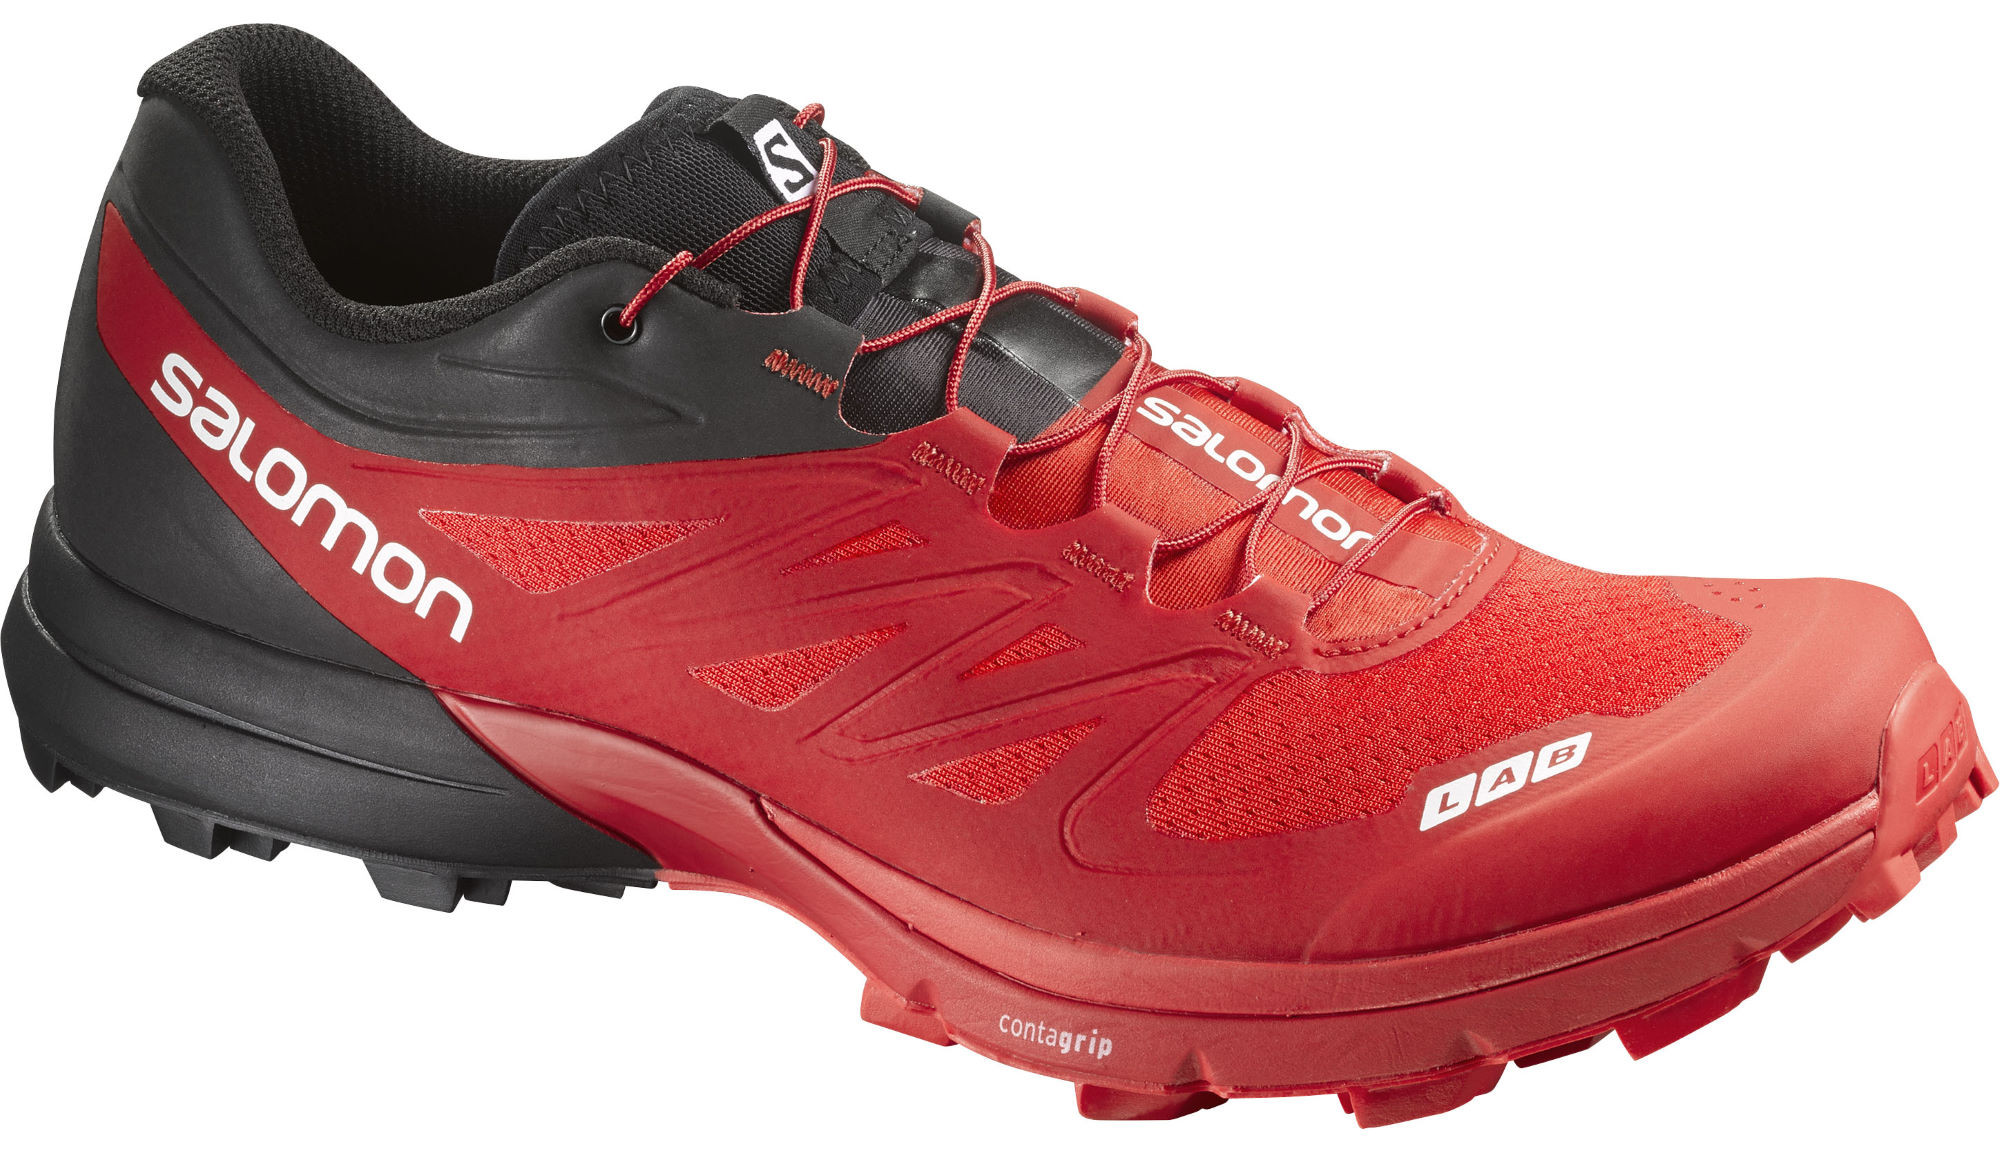 Salomon S-Lab Sense Ultra SG